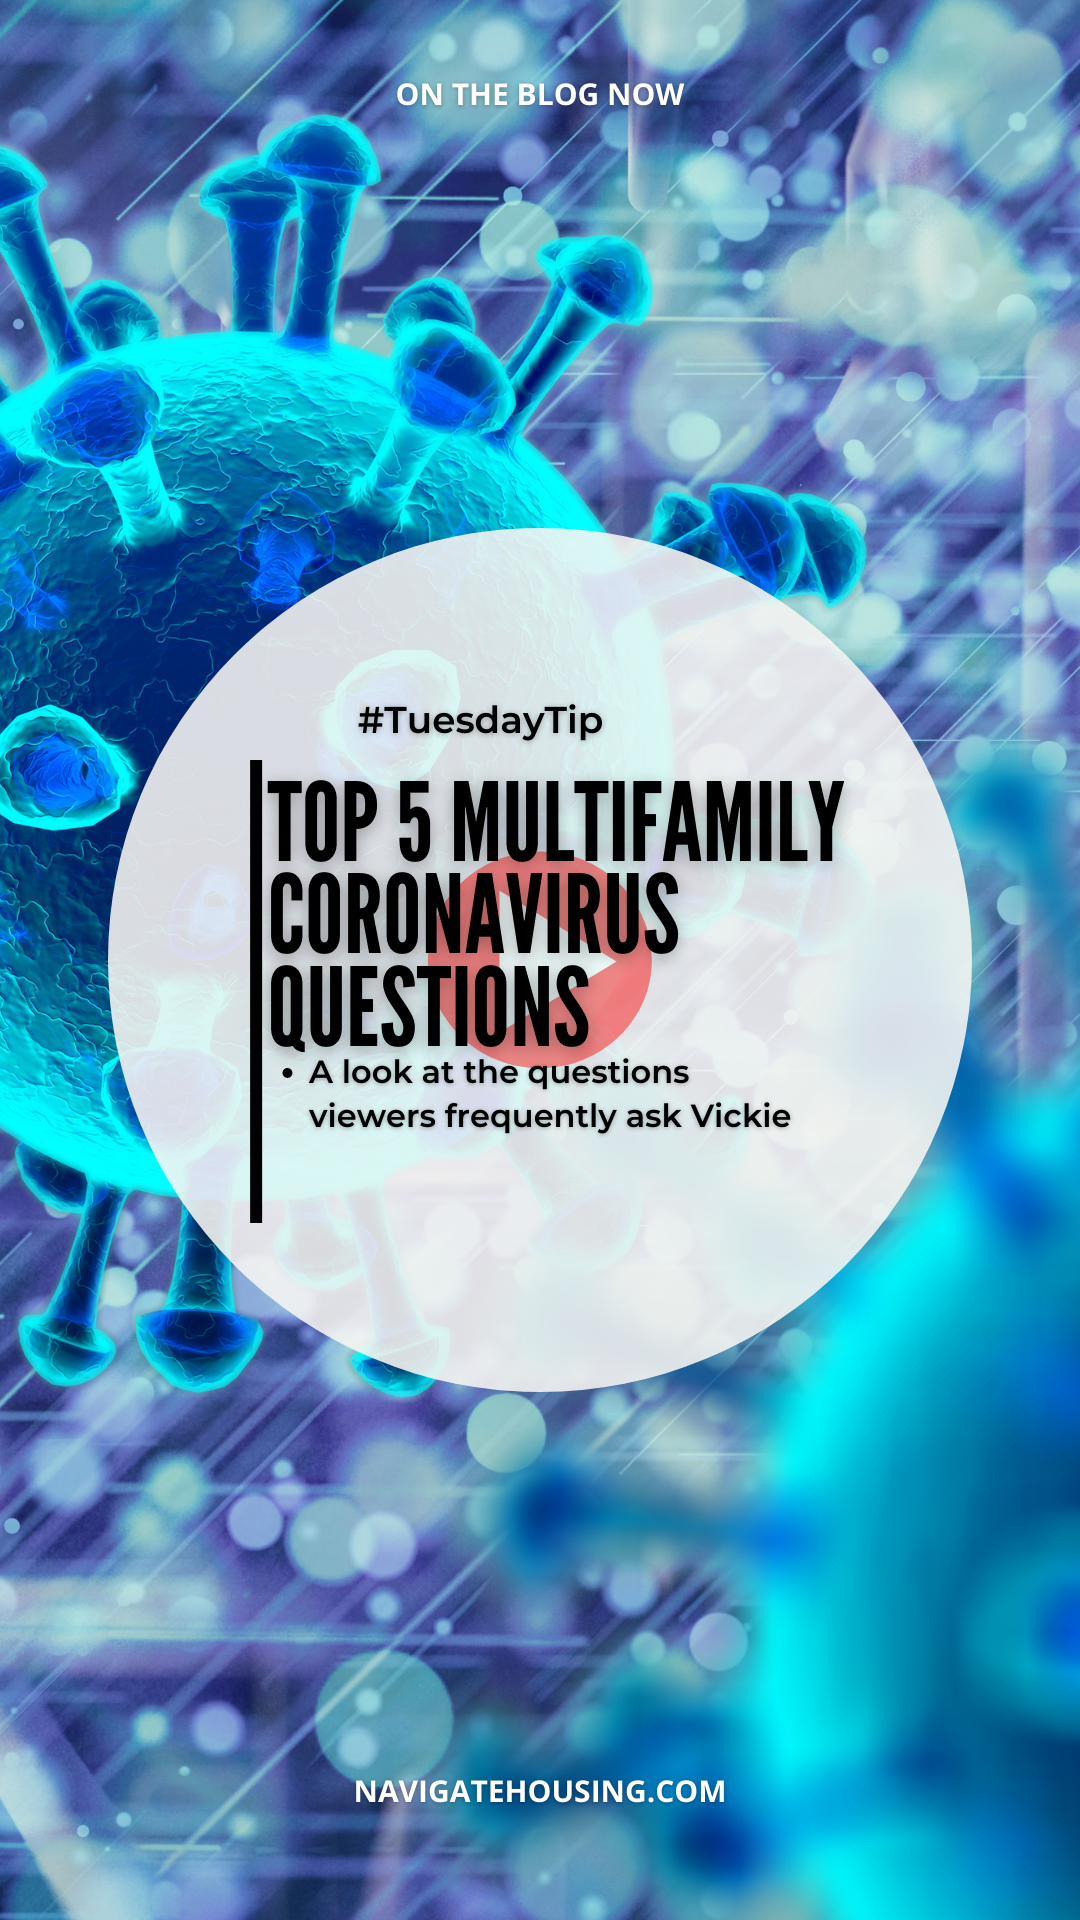 Multifamily Coronavirus questions